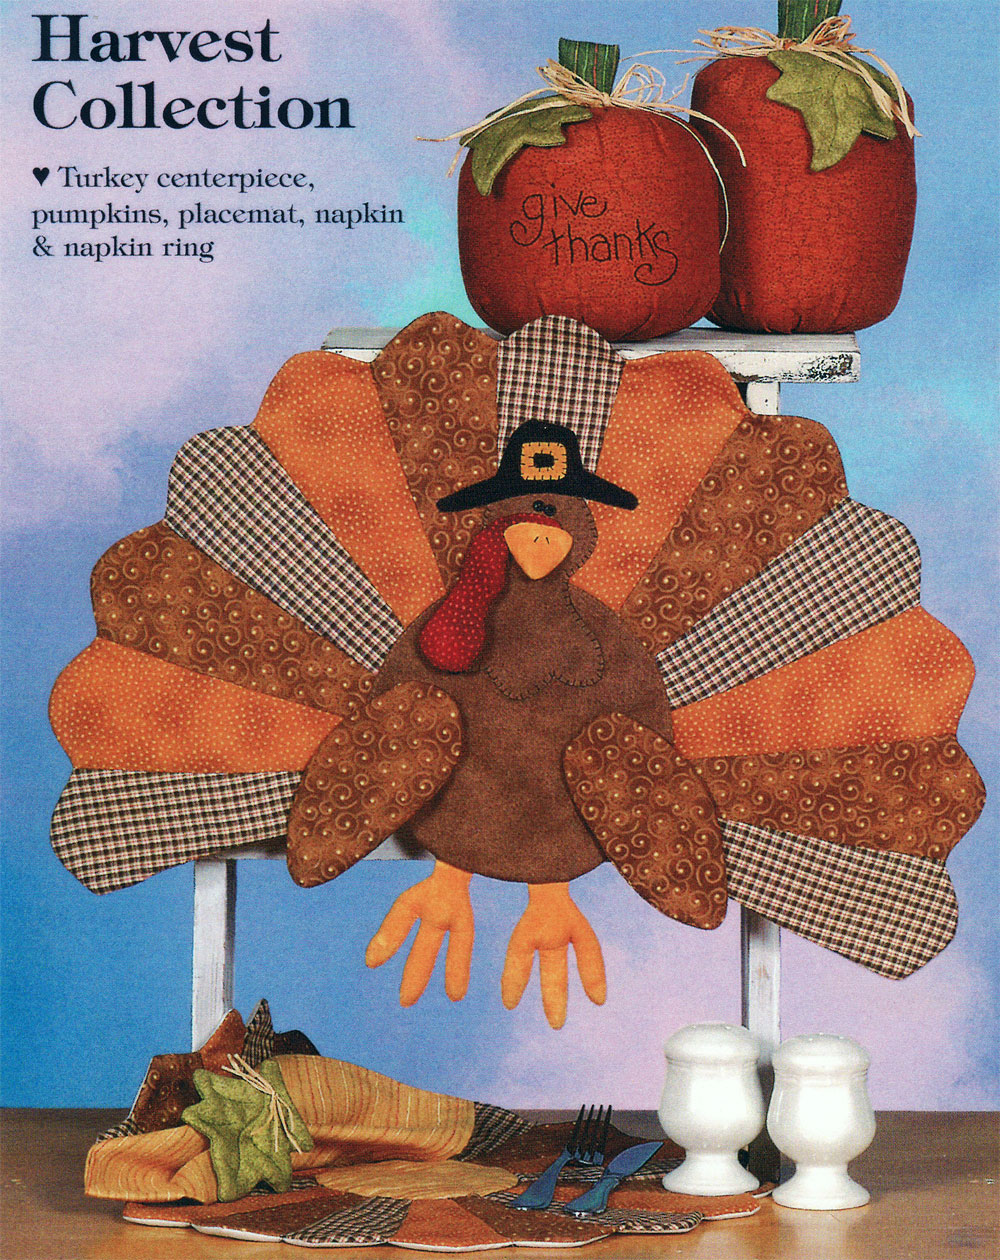 Harvest-Collection-sewing-pattern-Cotton-Ginnys-1